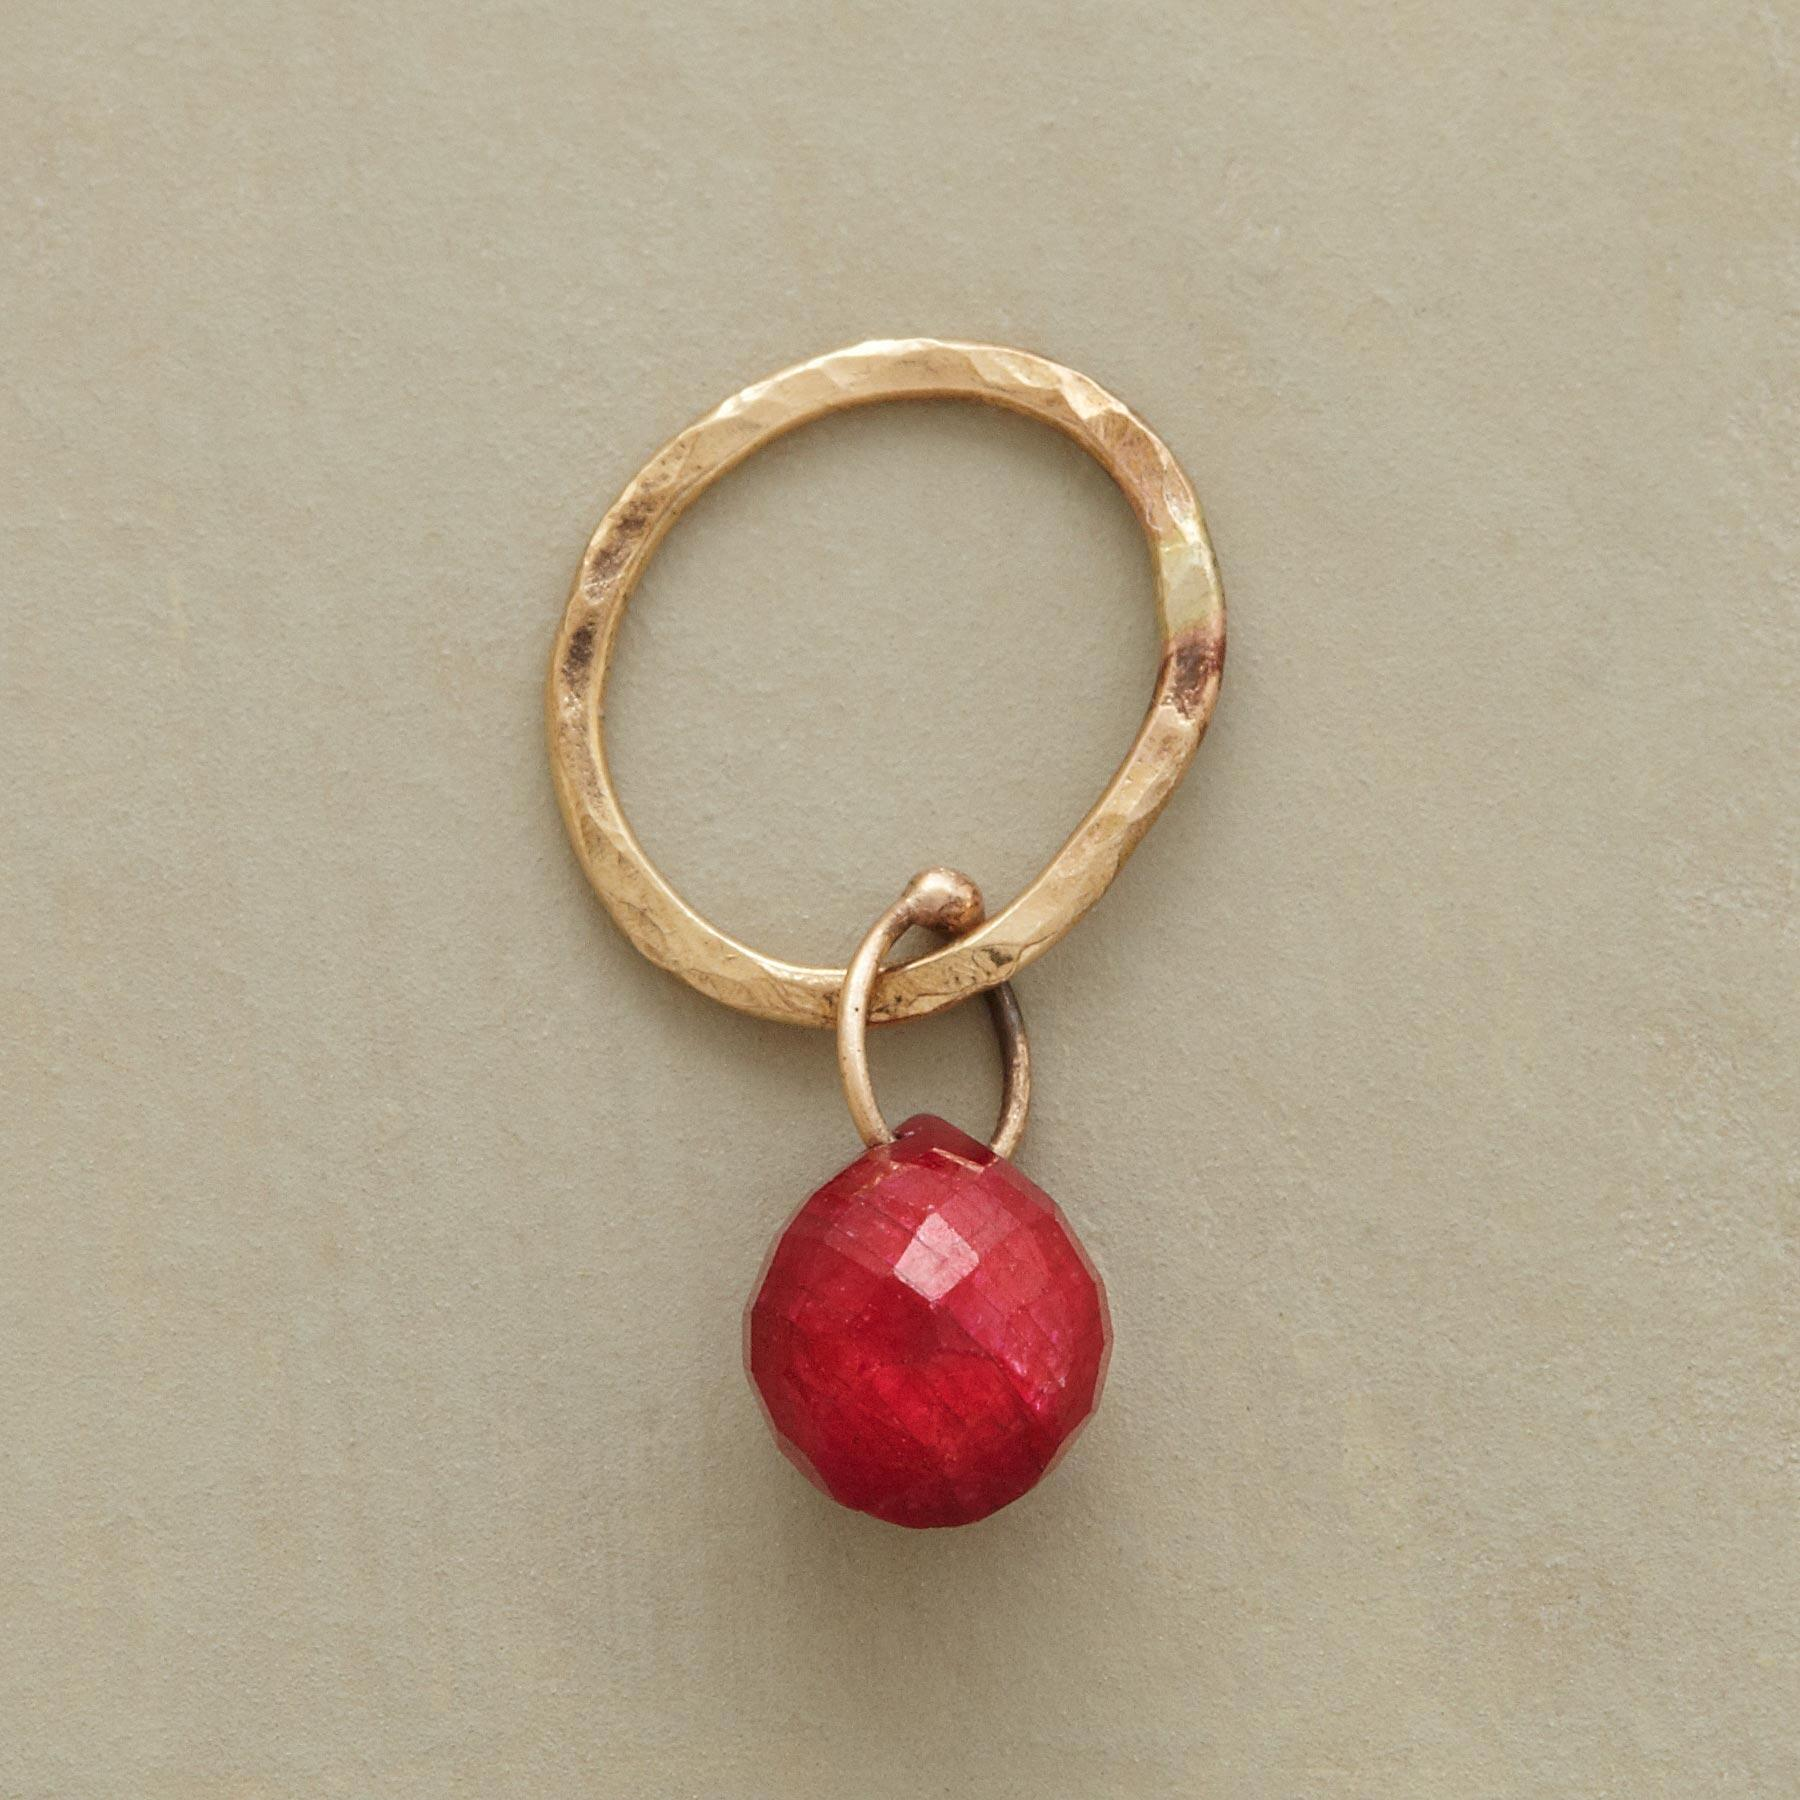 GOLD FACETED BIRTHSTONE CHARMS: View 1